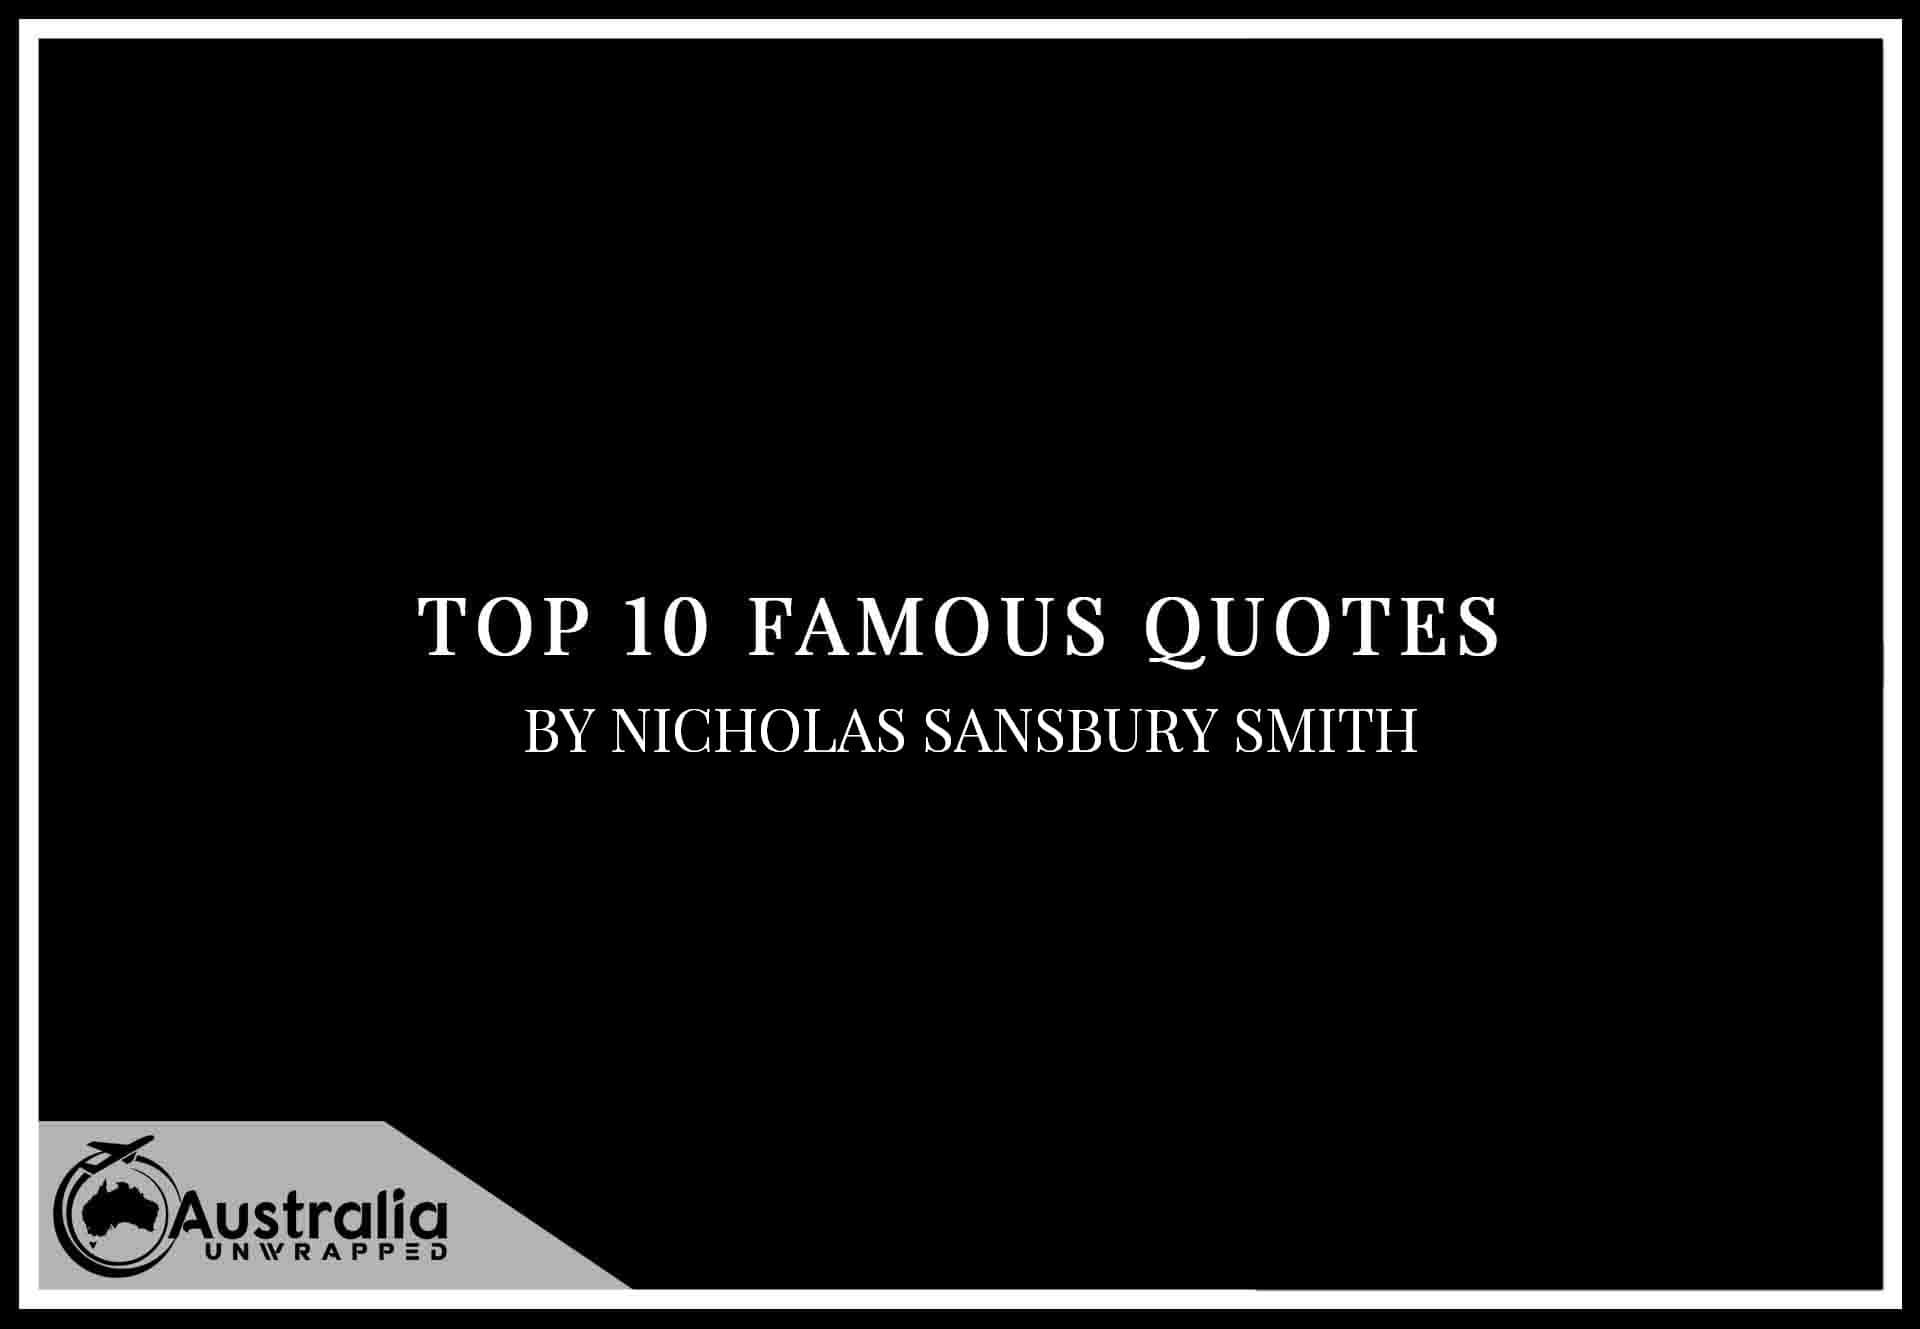 Top 10 Famous Quotes by Author Nicholas Sansbury Smith